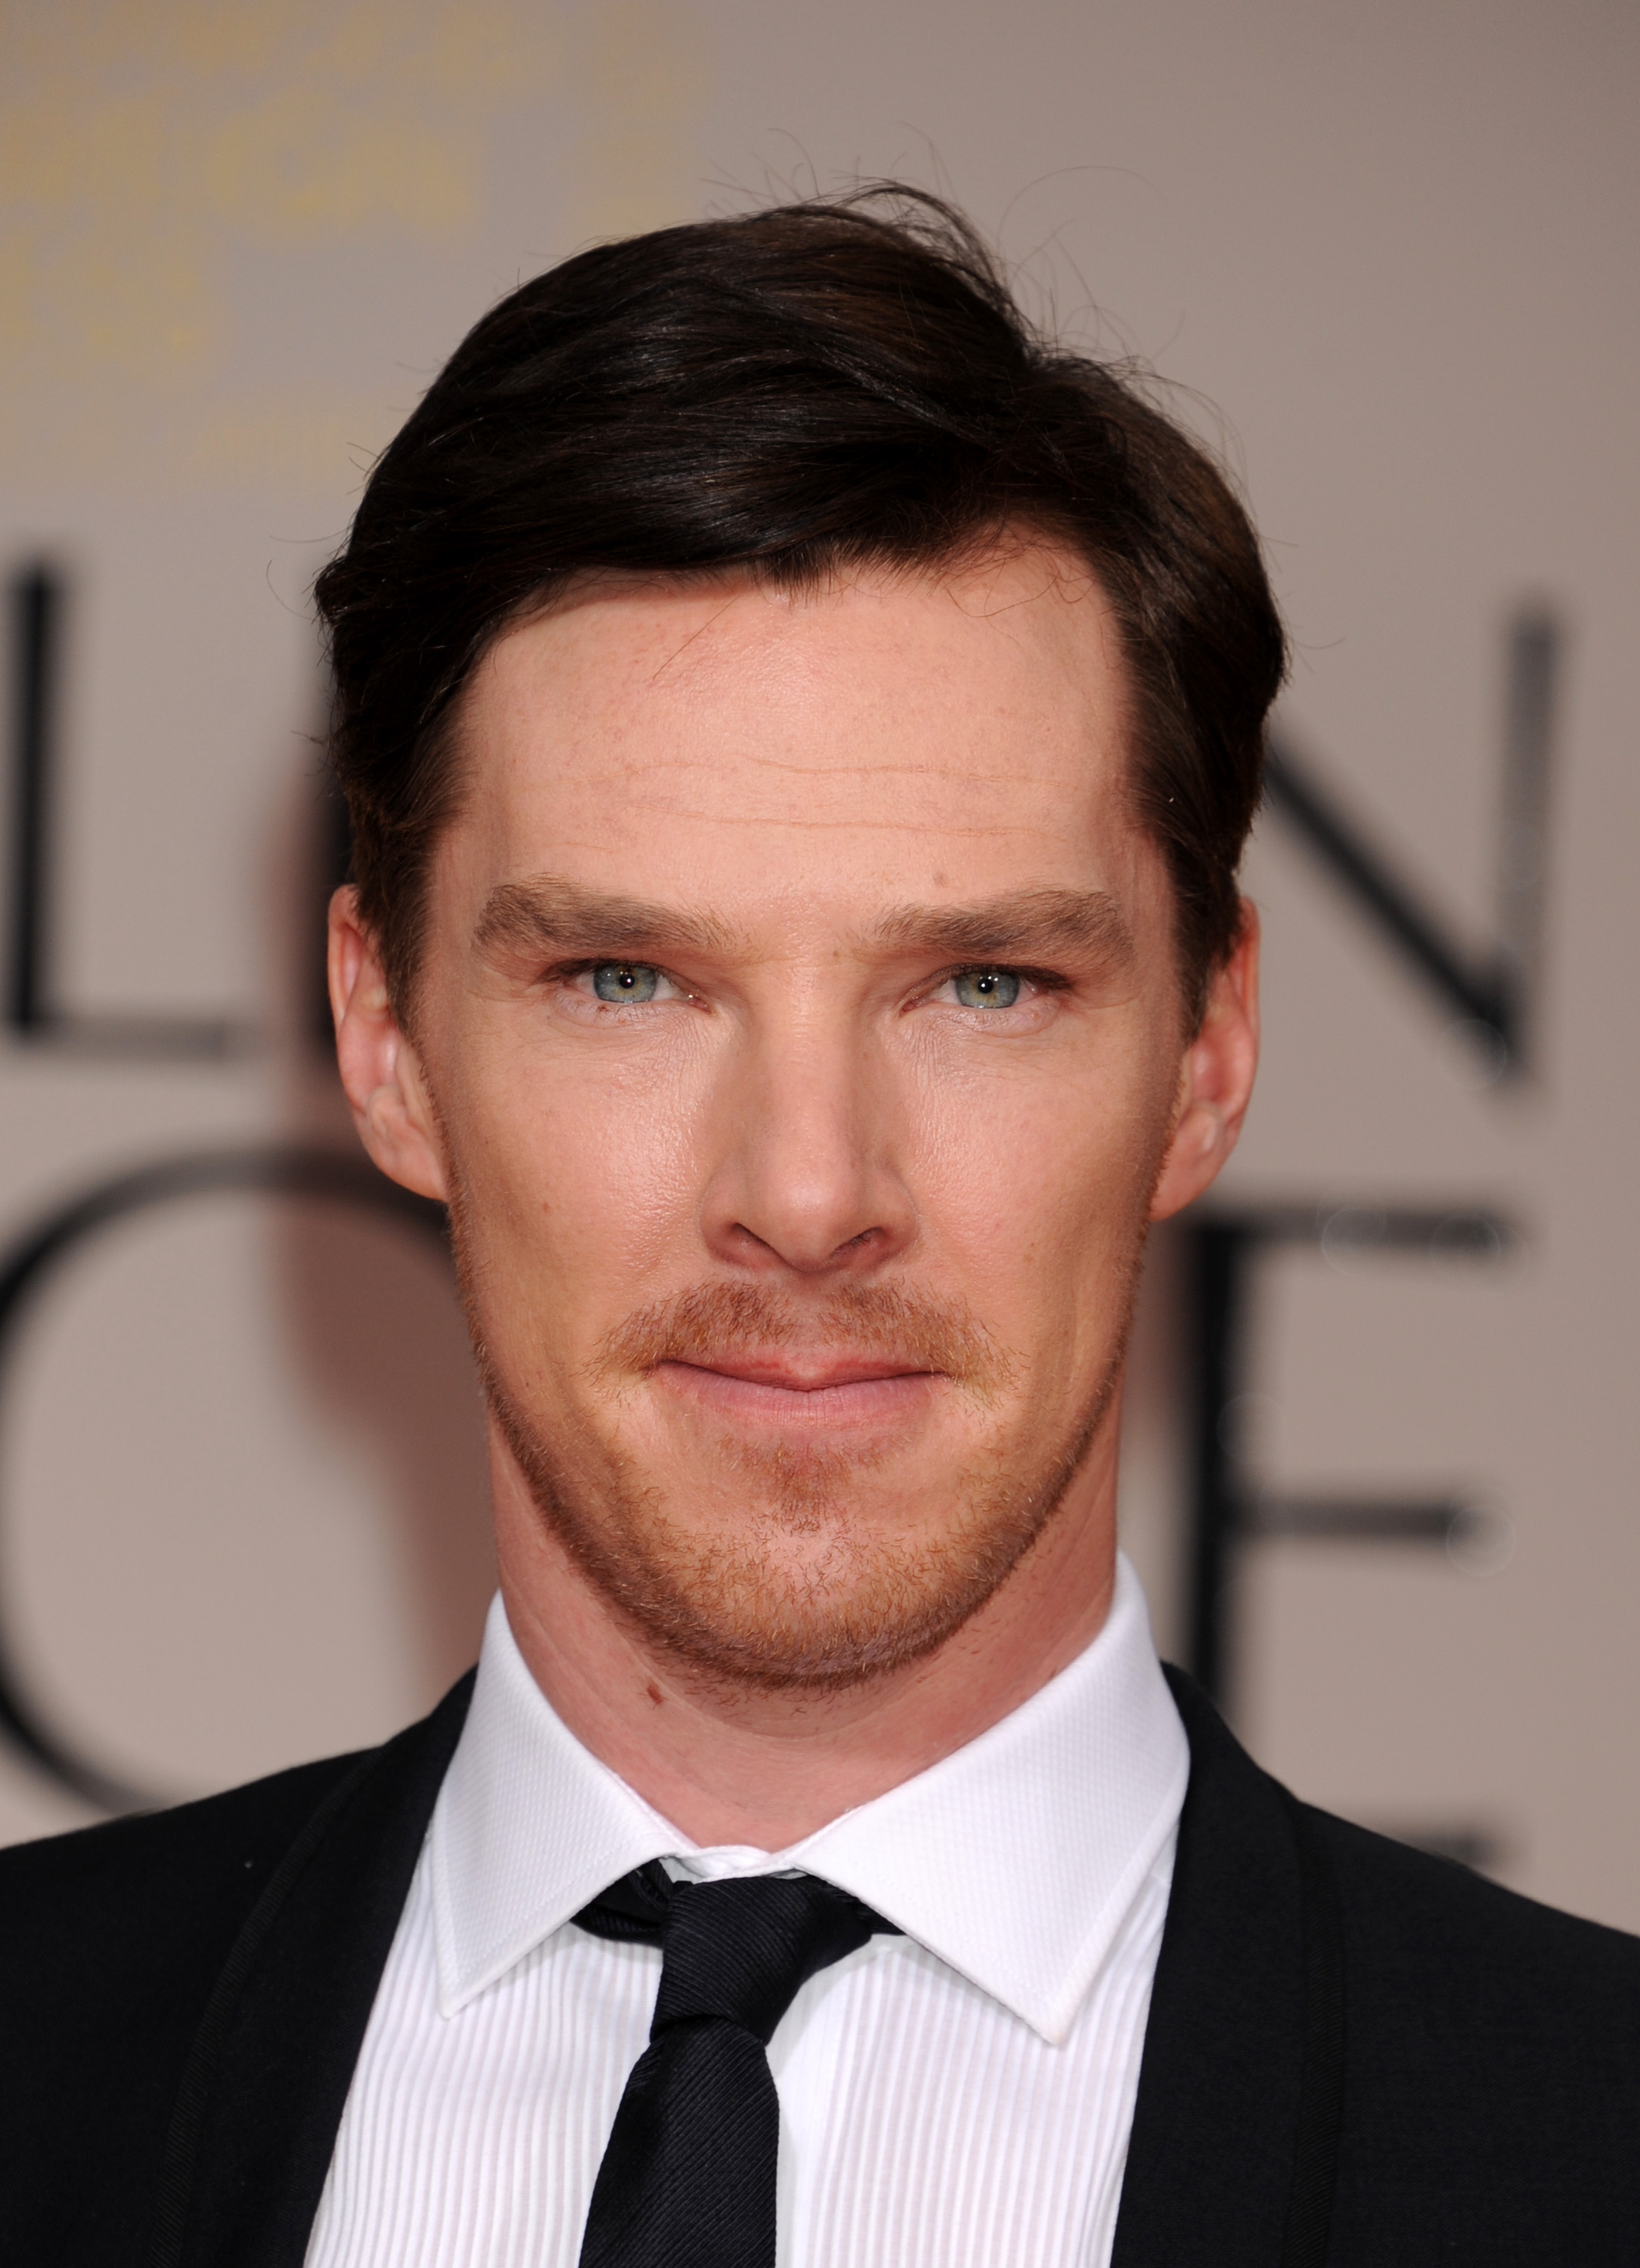 Benedict Cumberbatch Hd Wallpapers For Desktop Download